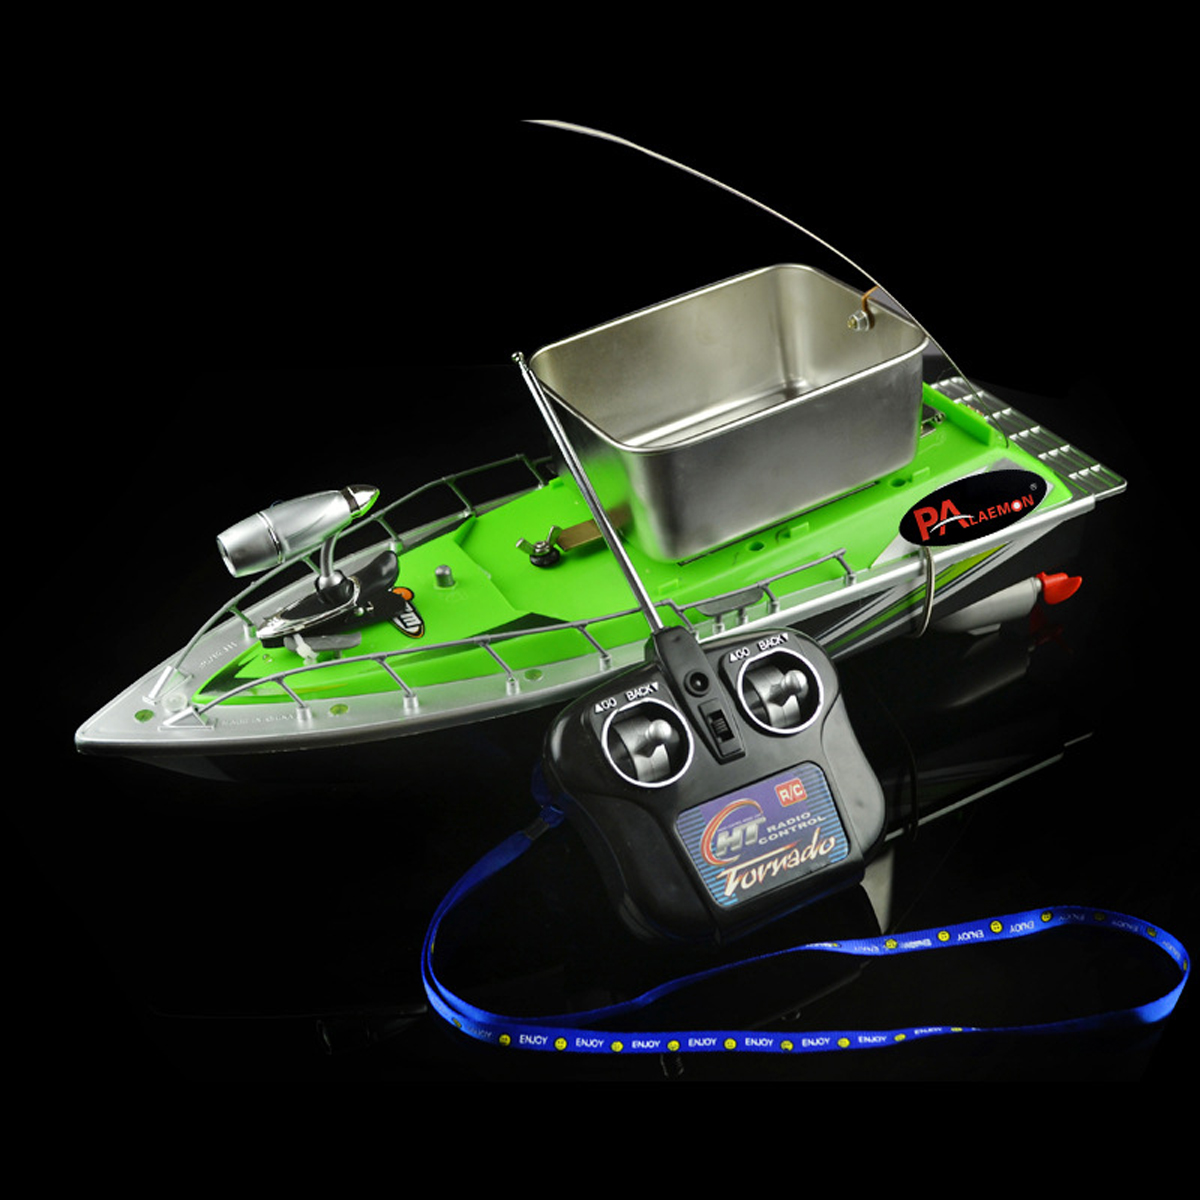 Speedboat Rc Bait Boat Carp Hull for Fishing Bait Mini Speed Boat <font><b>Remote</b></font> <font><b>Control</b></font> Boat Radio <font><b>Control</b></font> Light Toy Finder Model Ship image